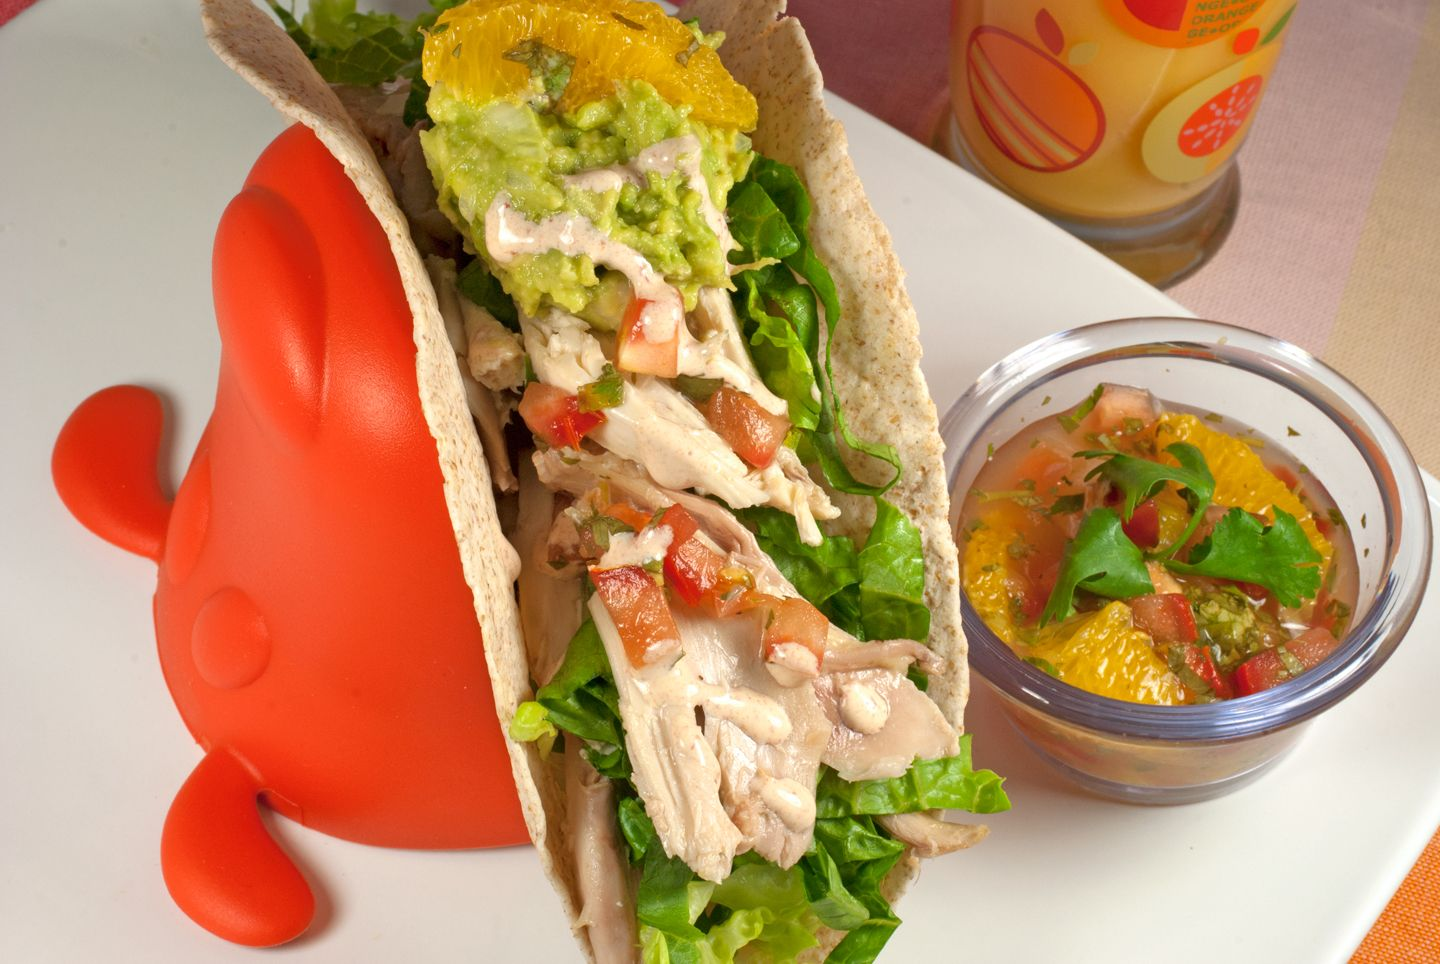 Easy chicken soft tacos the whole family will love. Prepare and serve or make them together as a family.